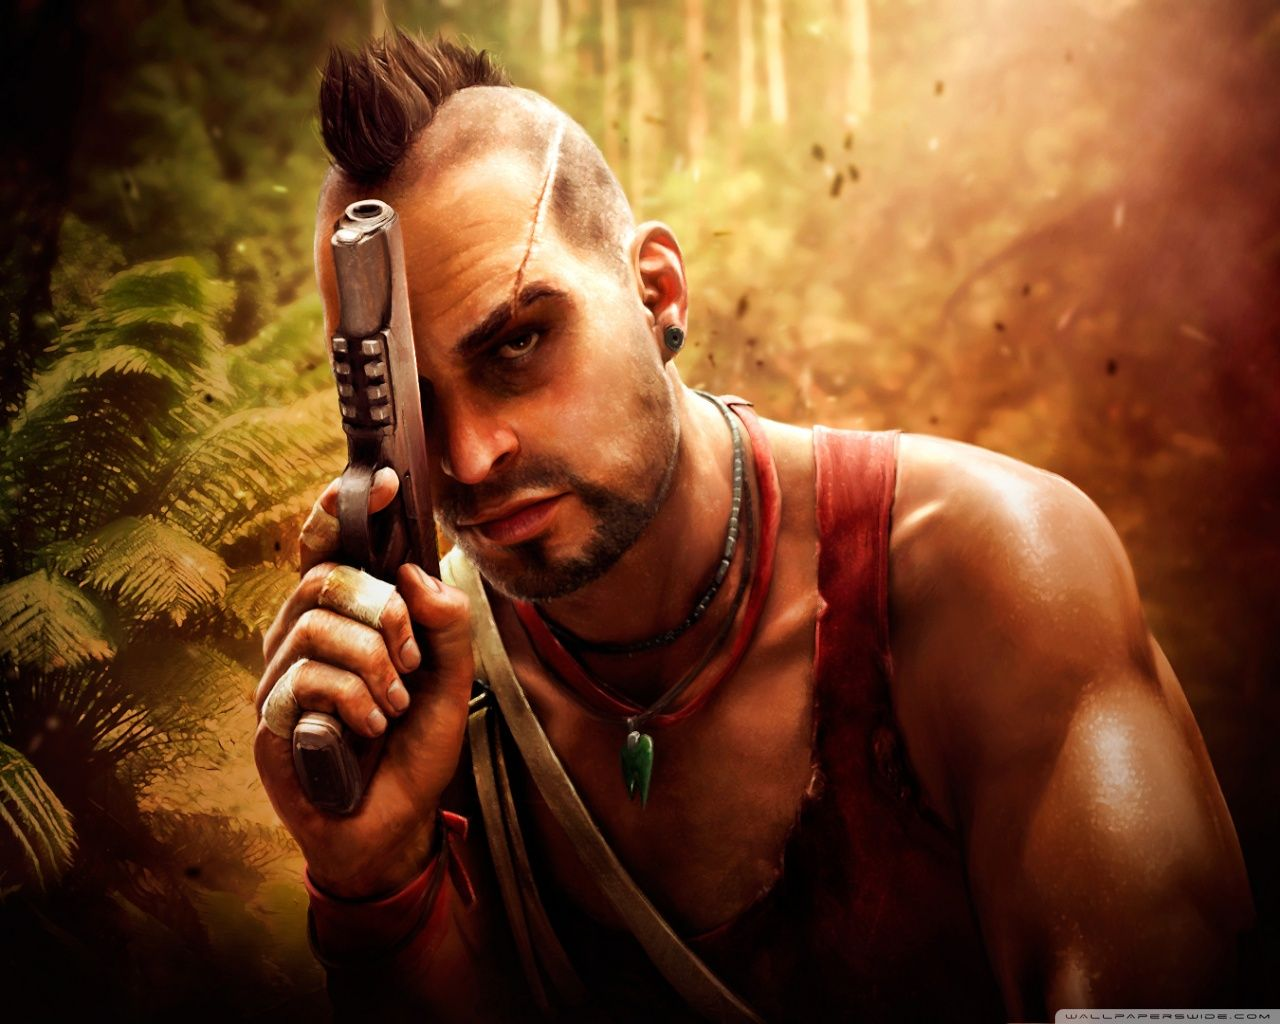 Far Cry 3 Game Hd Wallpaper 04 1280x1024 Wallpaper Download